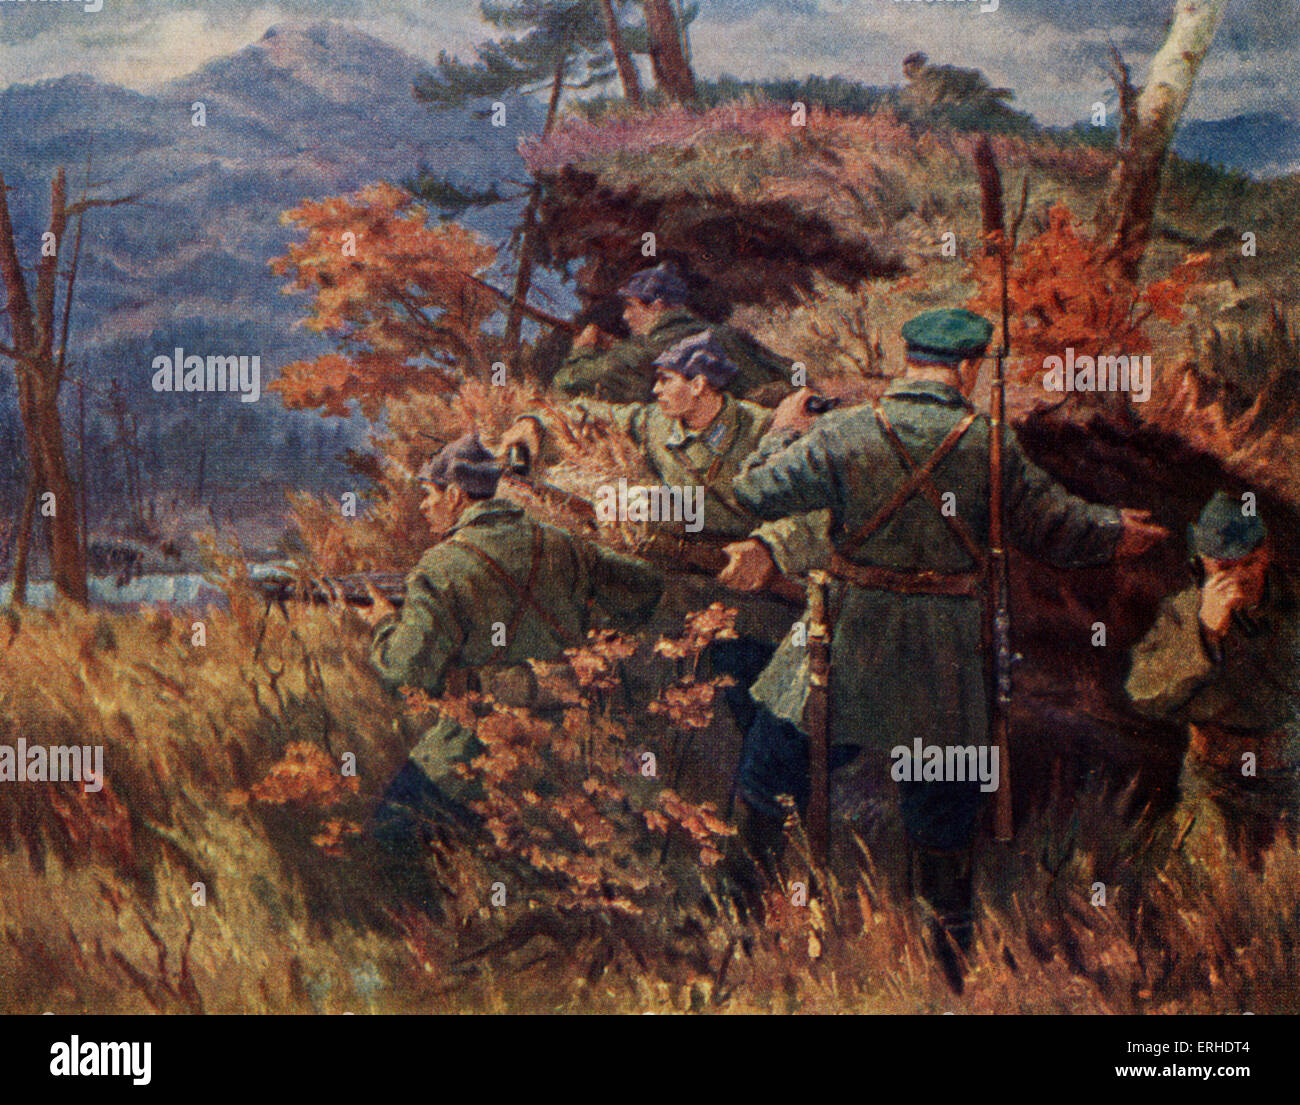 Russian Border Police Postcard Painting.   Stock Image